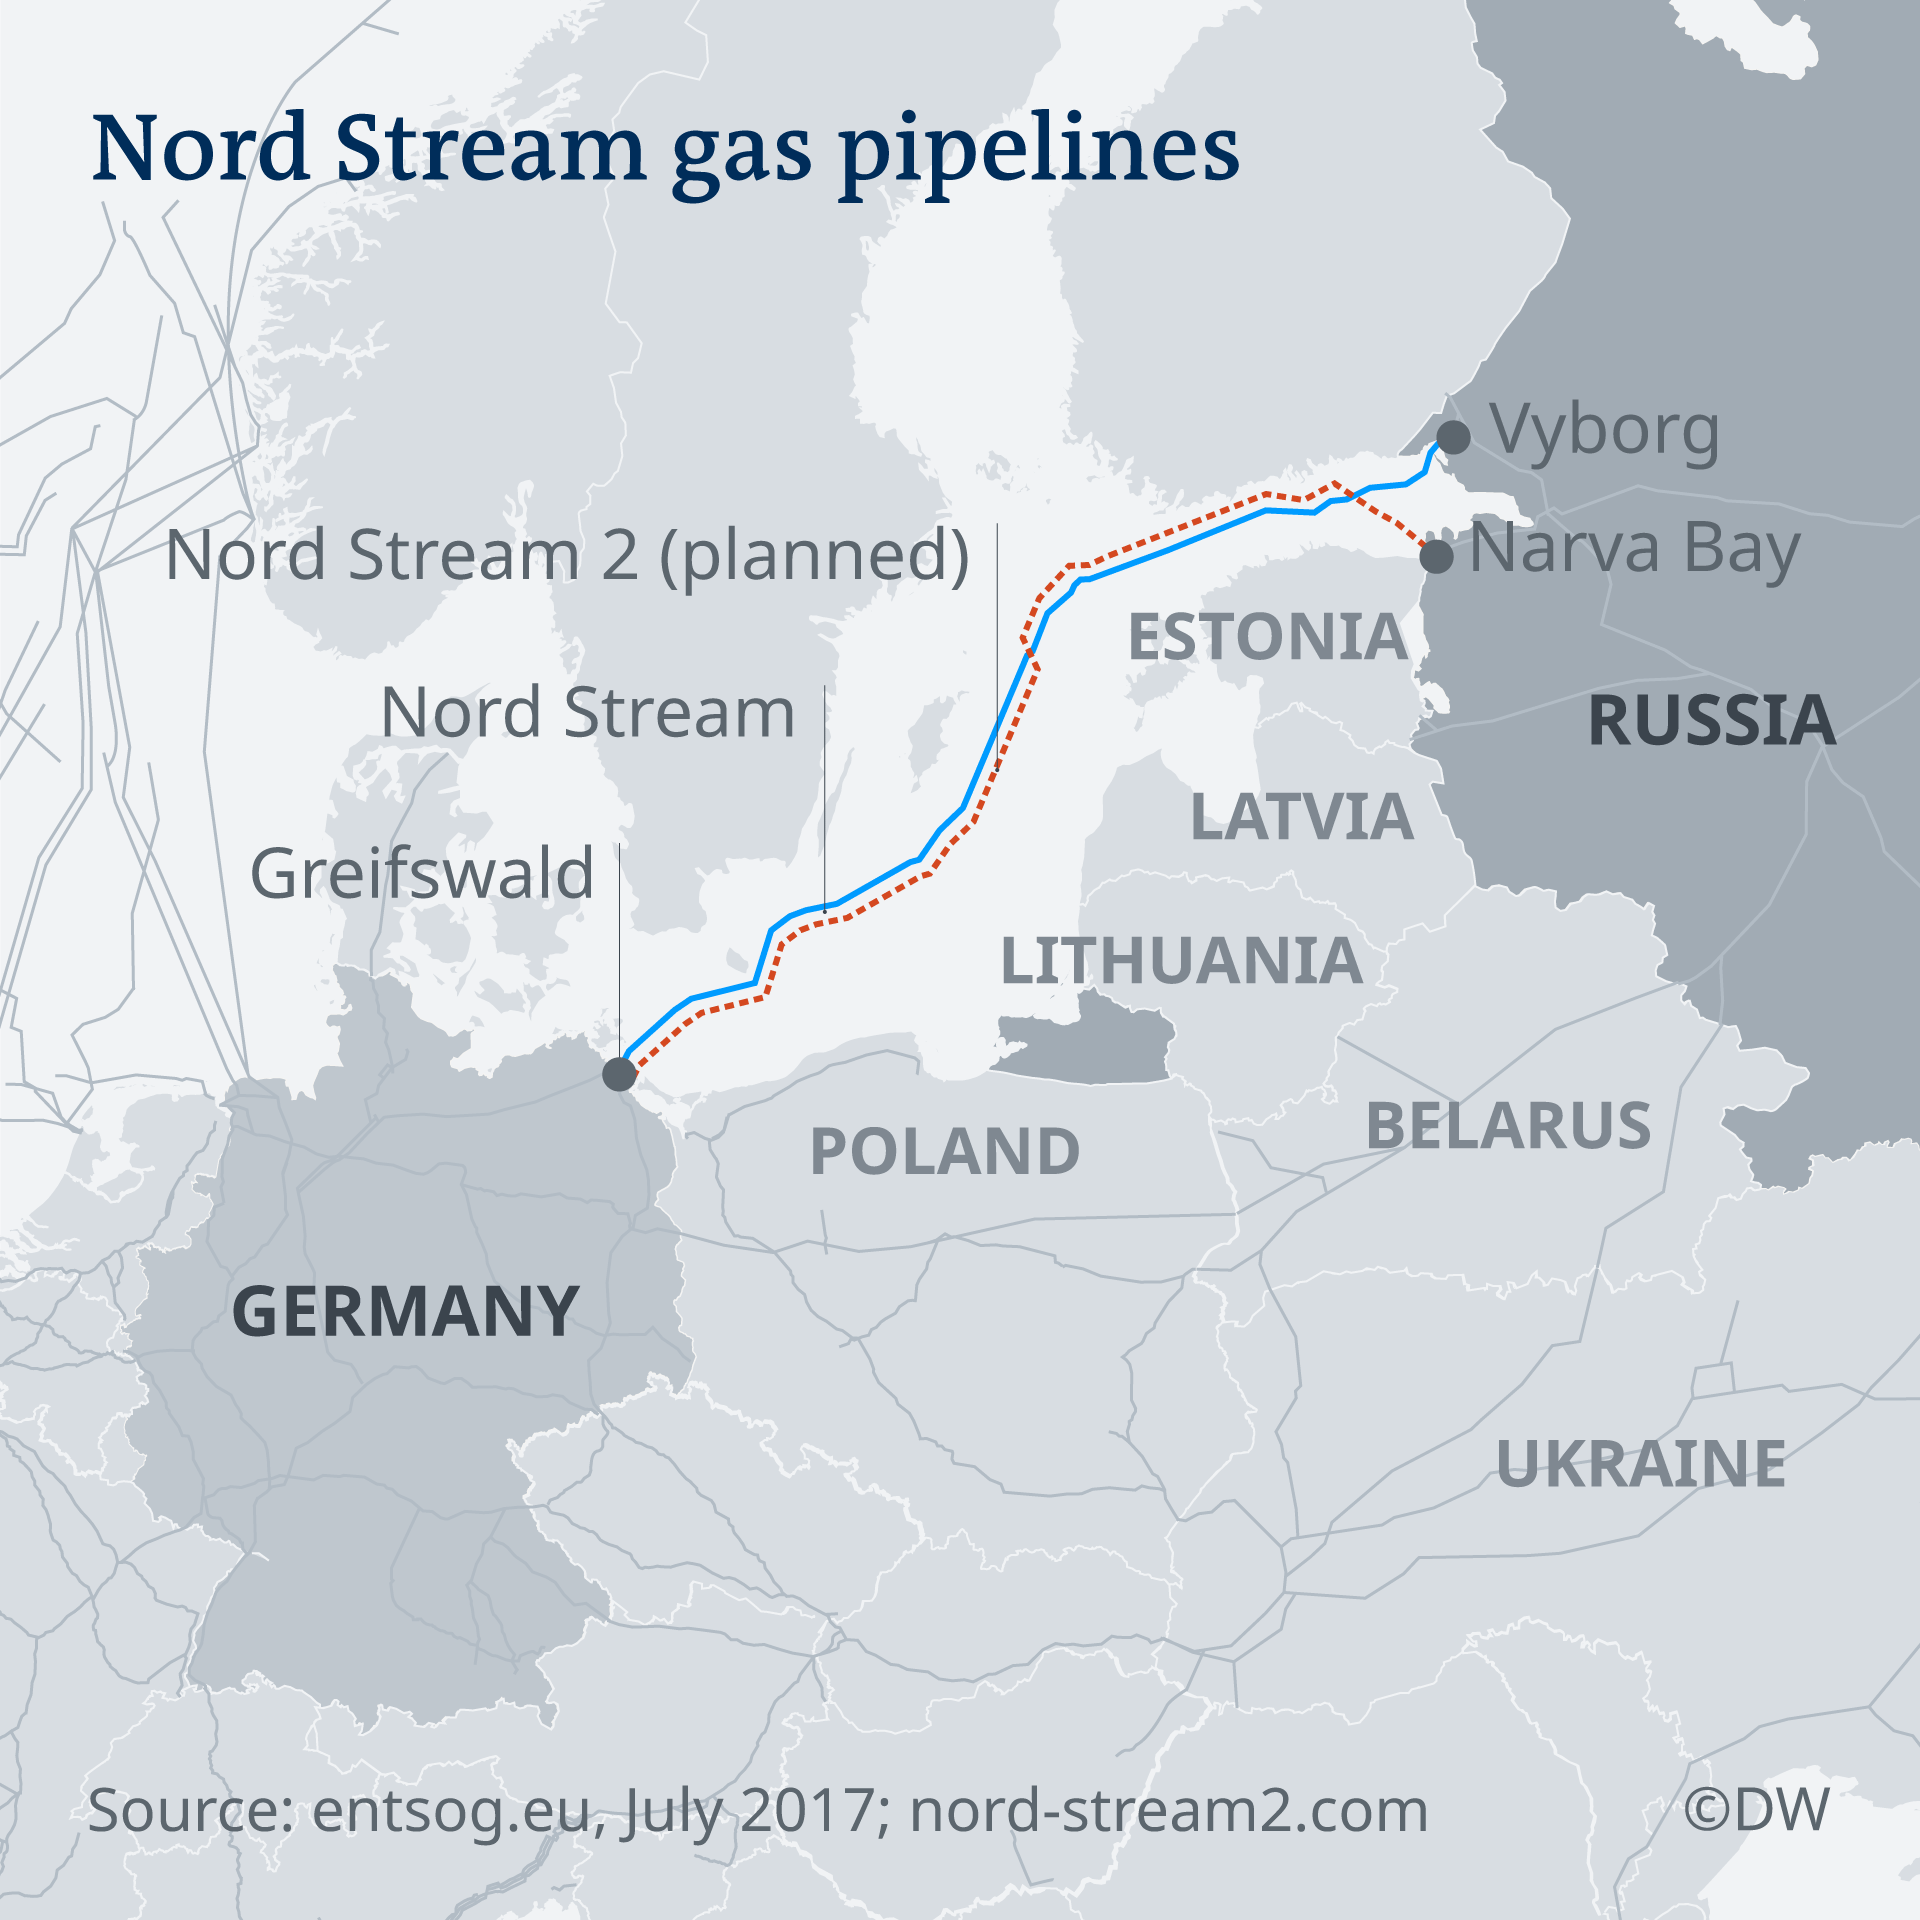 A map showing the route of Nord Steeam and Nord Steam 2